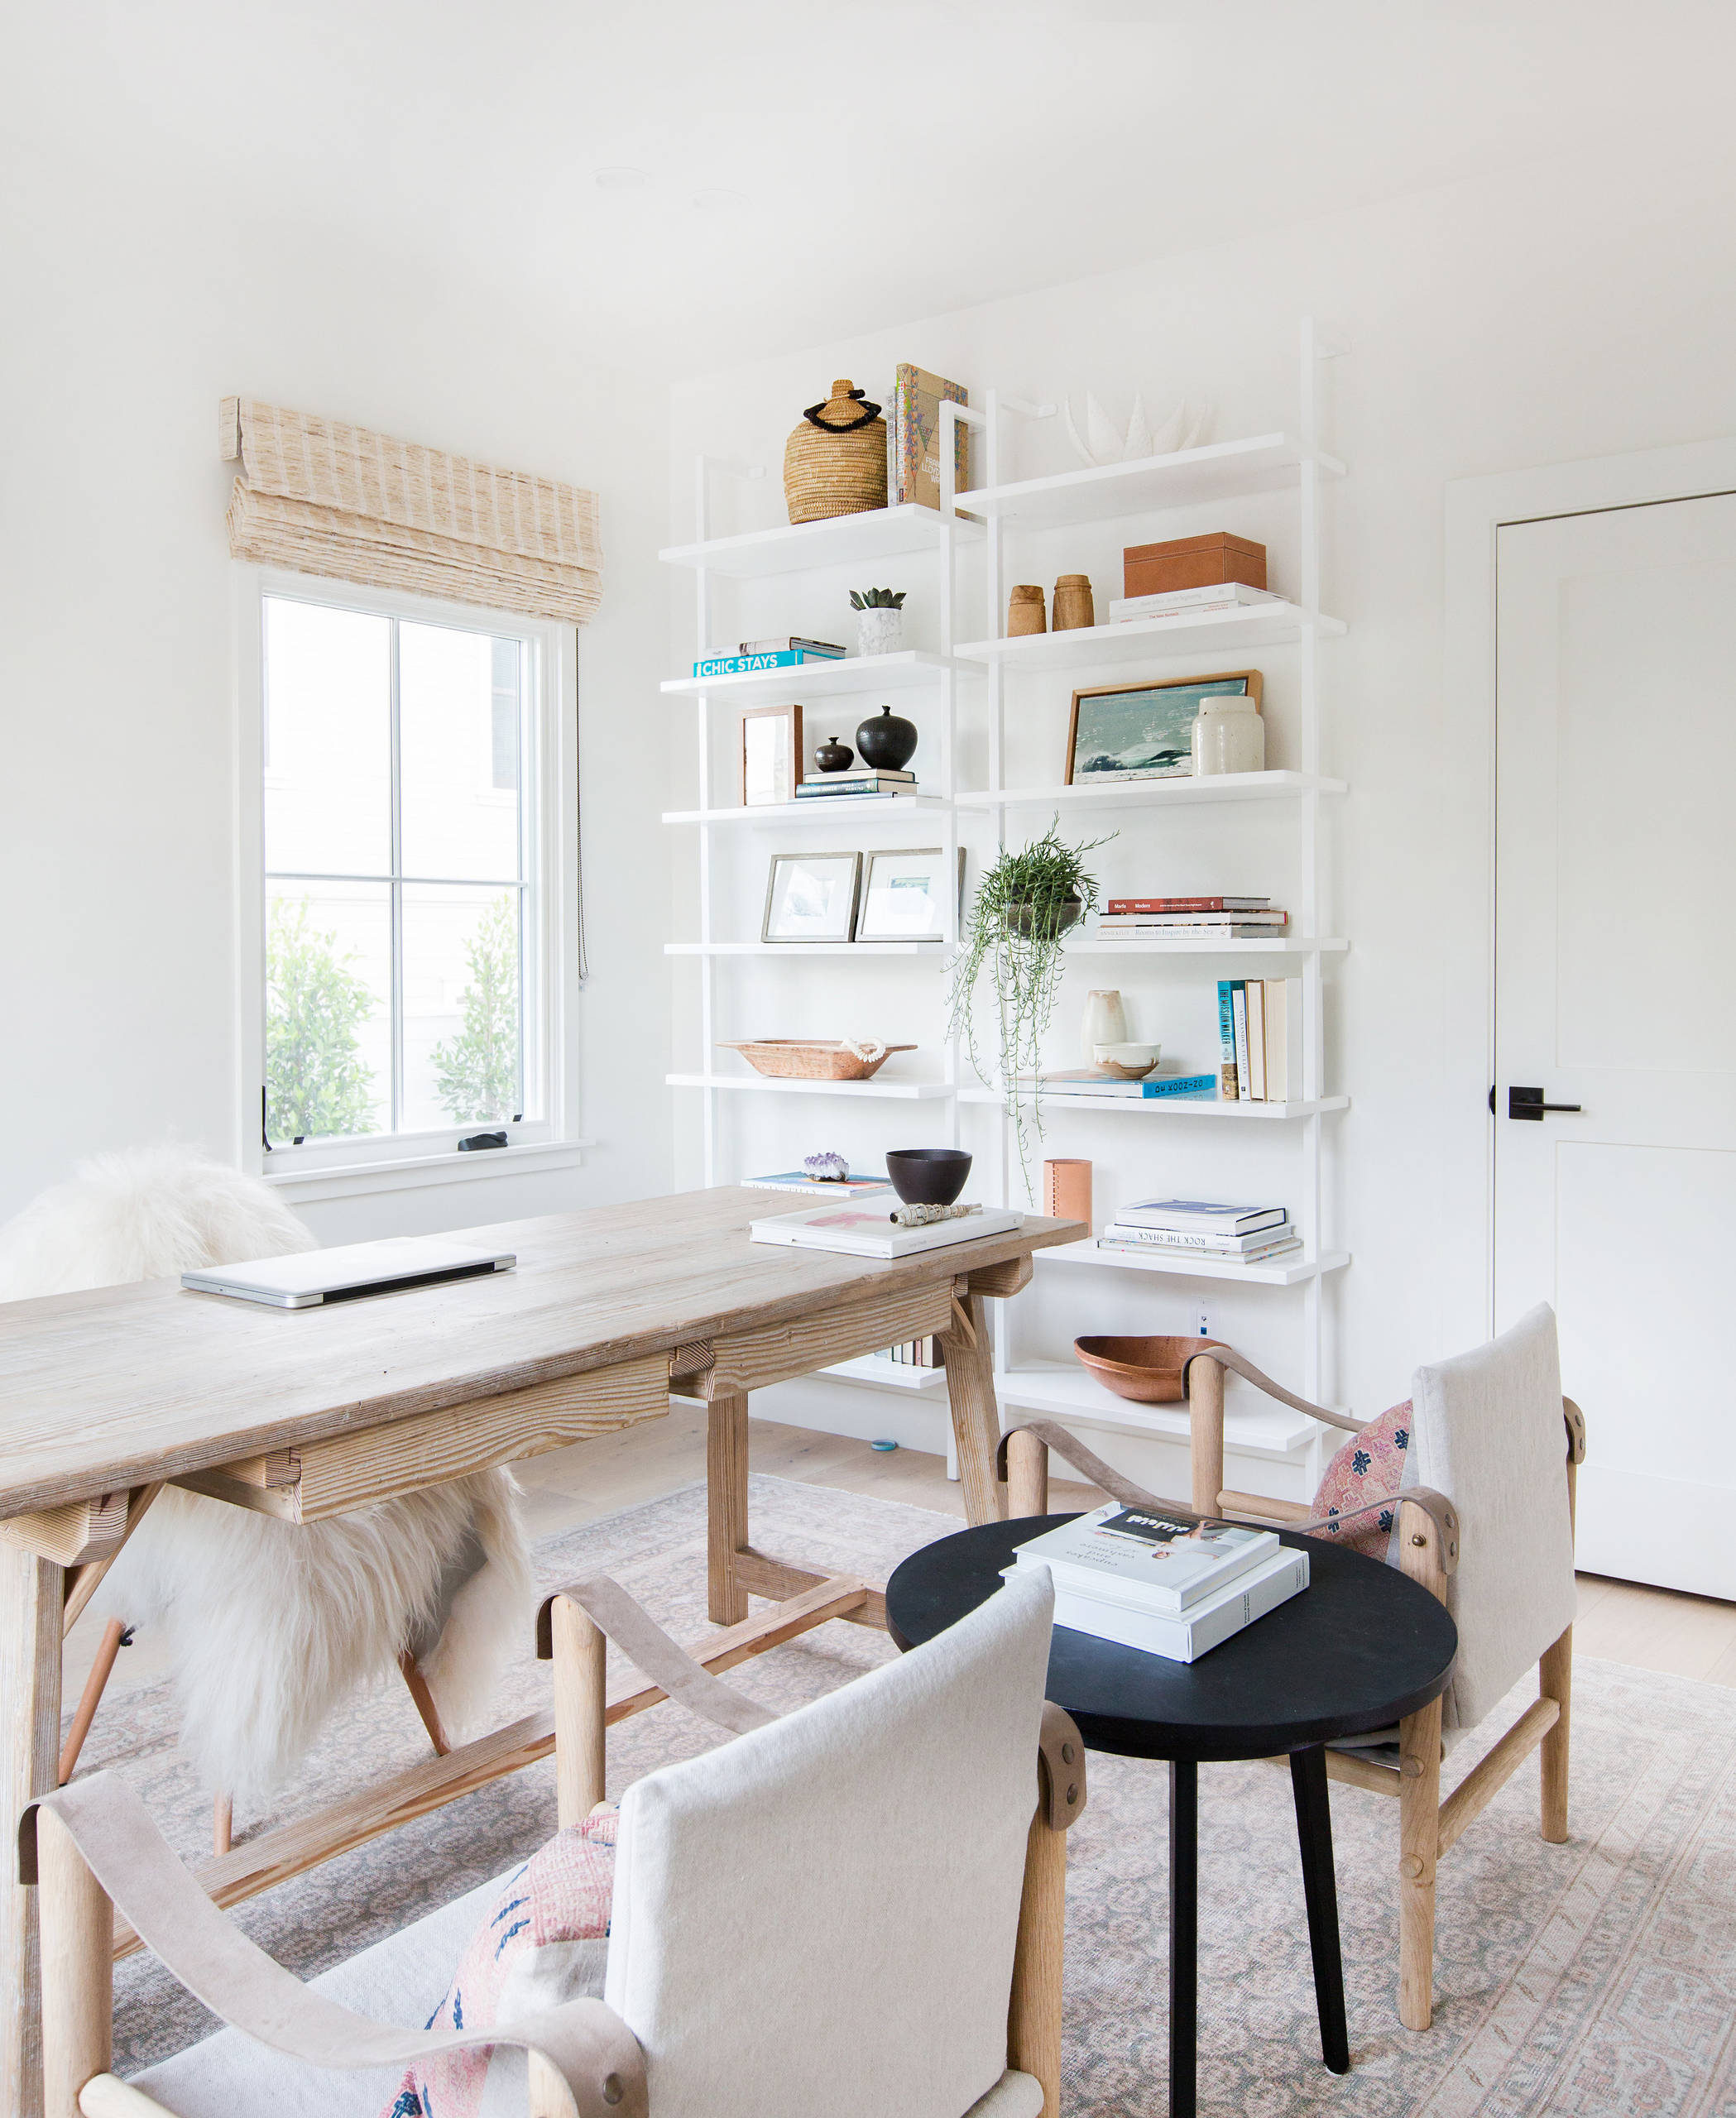 75 Beautiful Home Office Pictures Ideas February 2021 Houzz